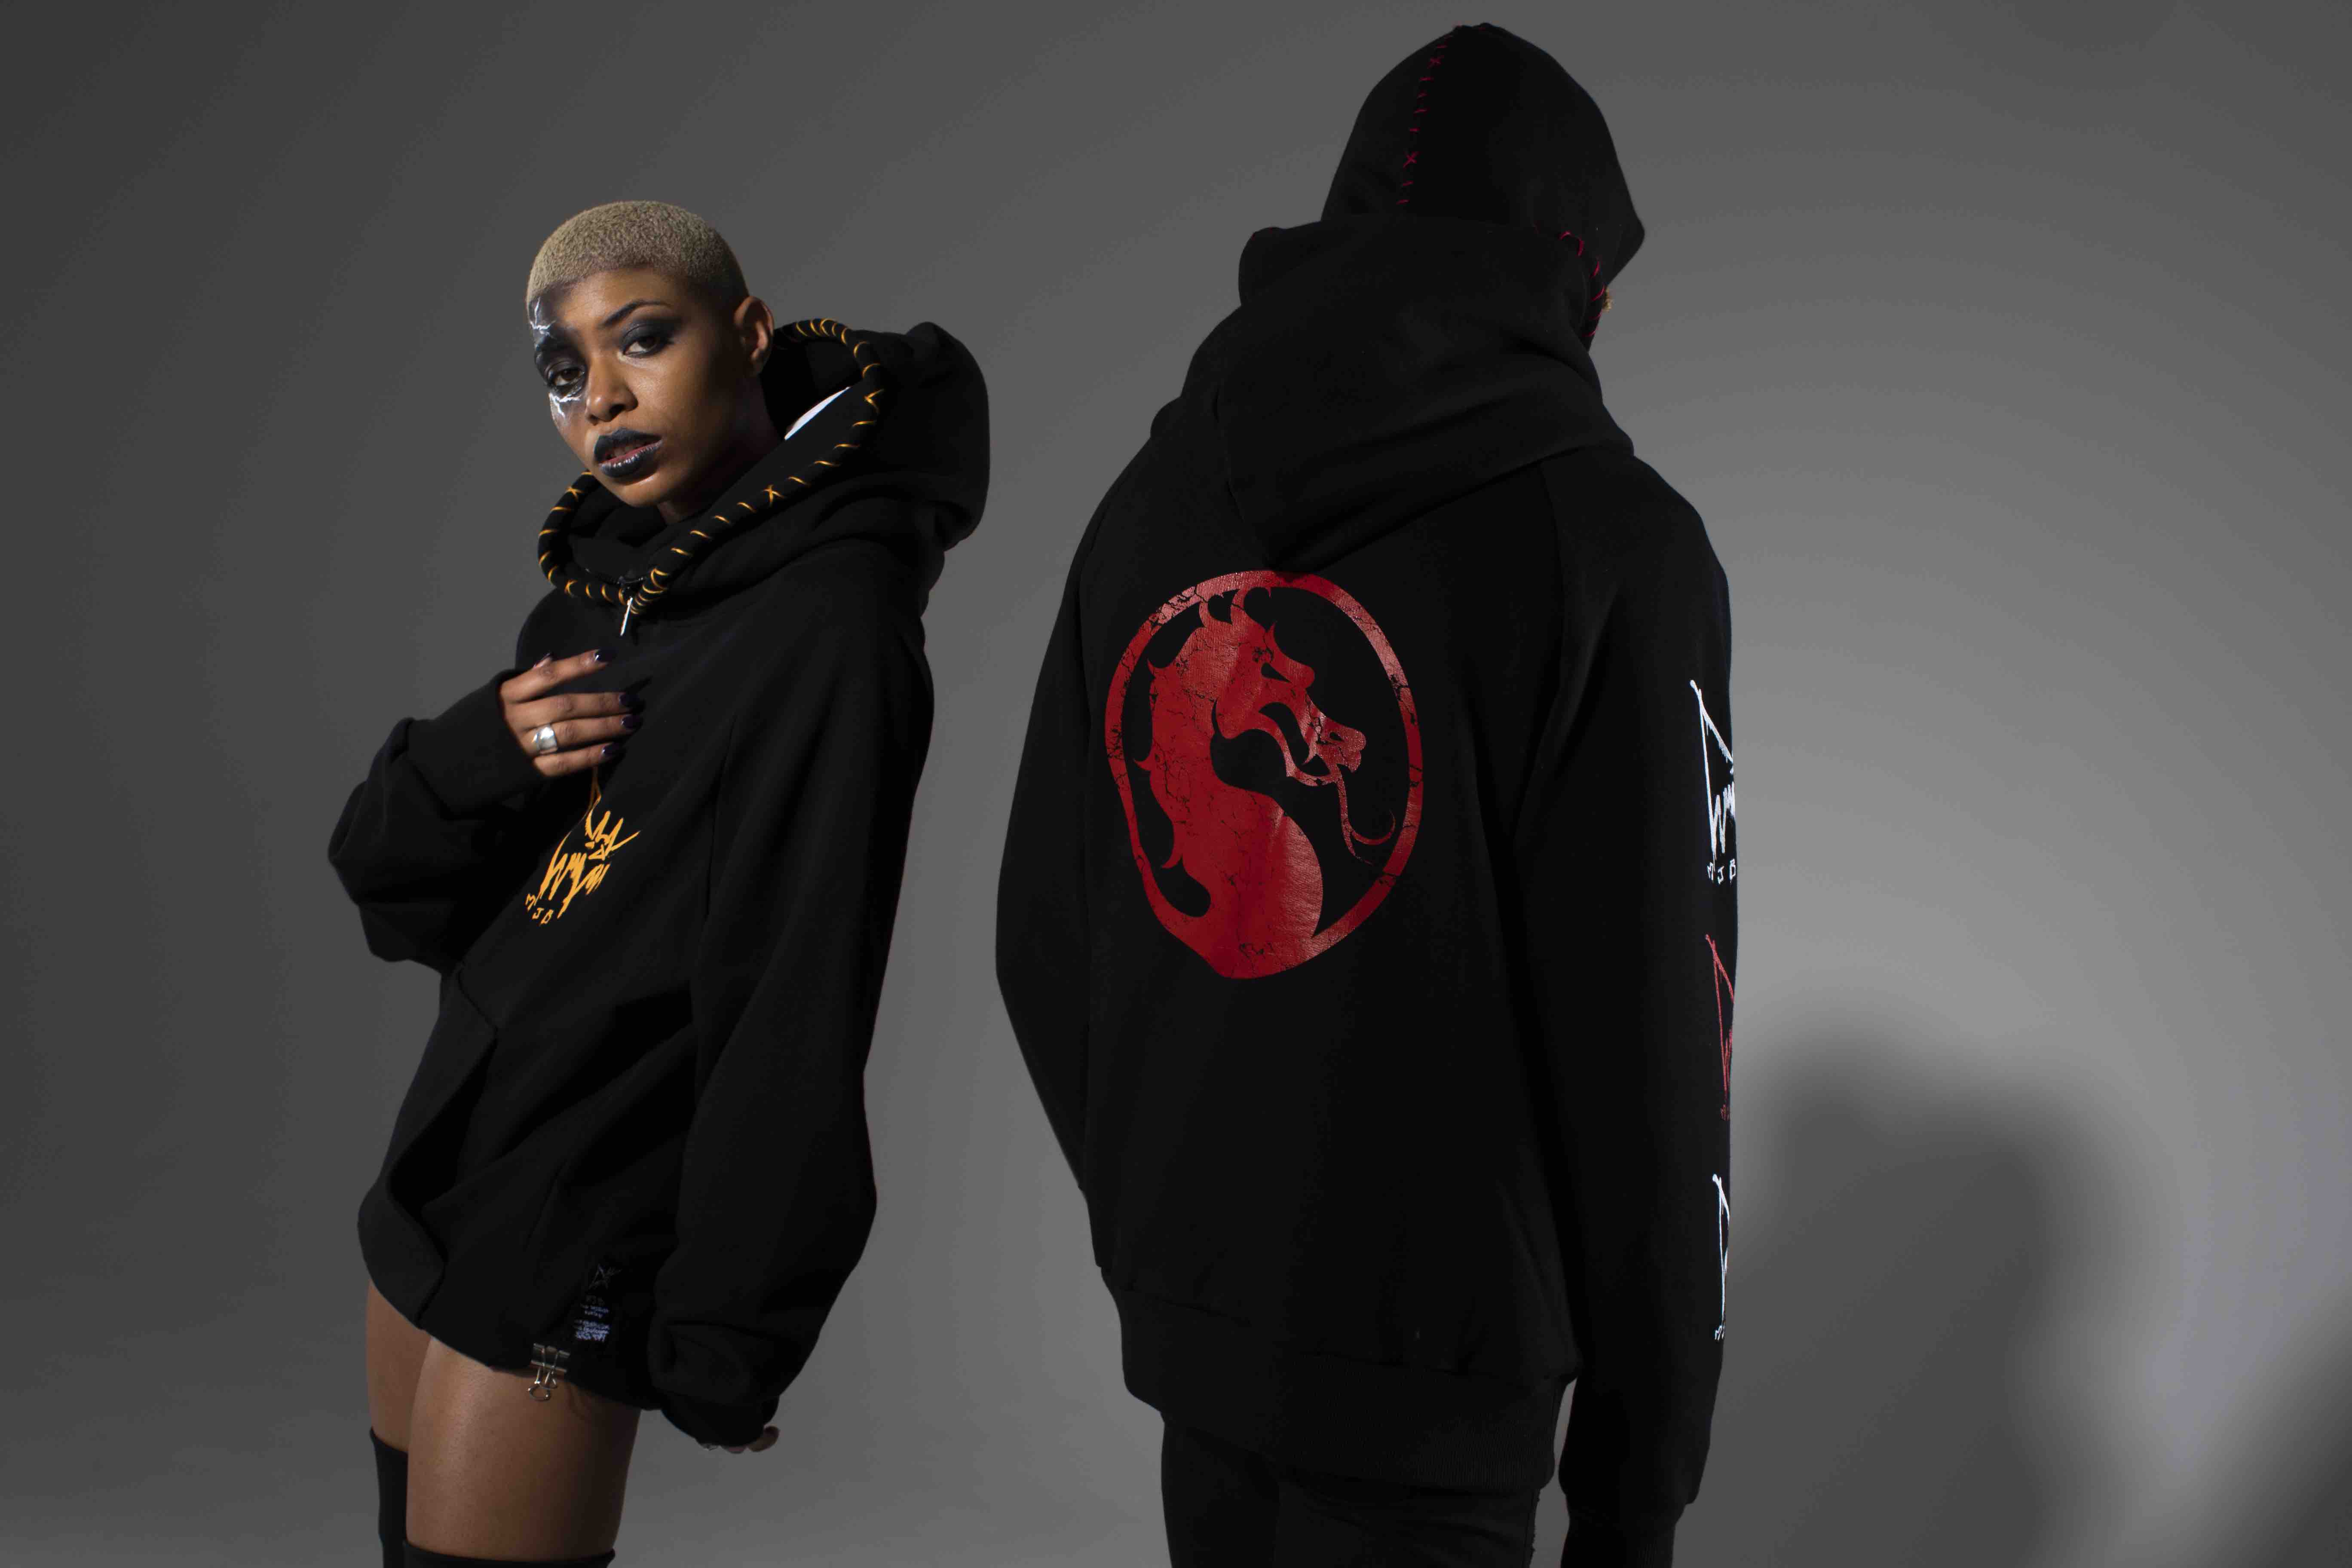 Marc Jacques Burton Mortal Kombat clothing line hoodies